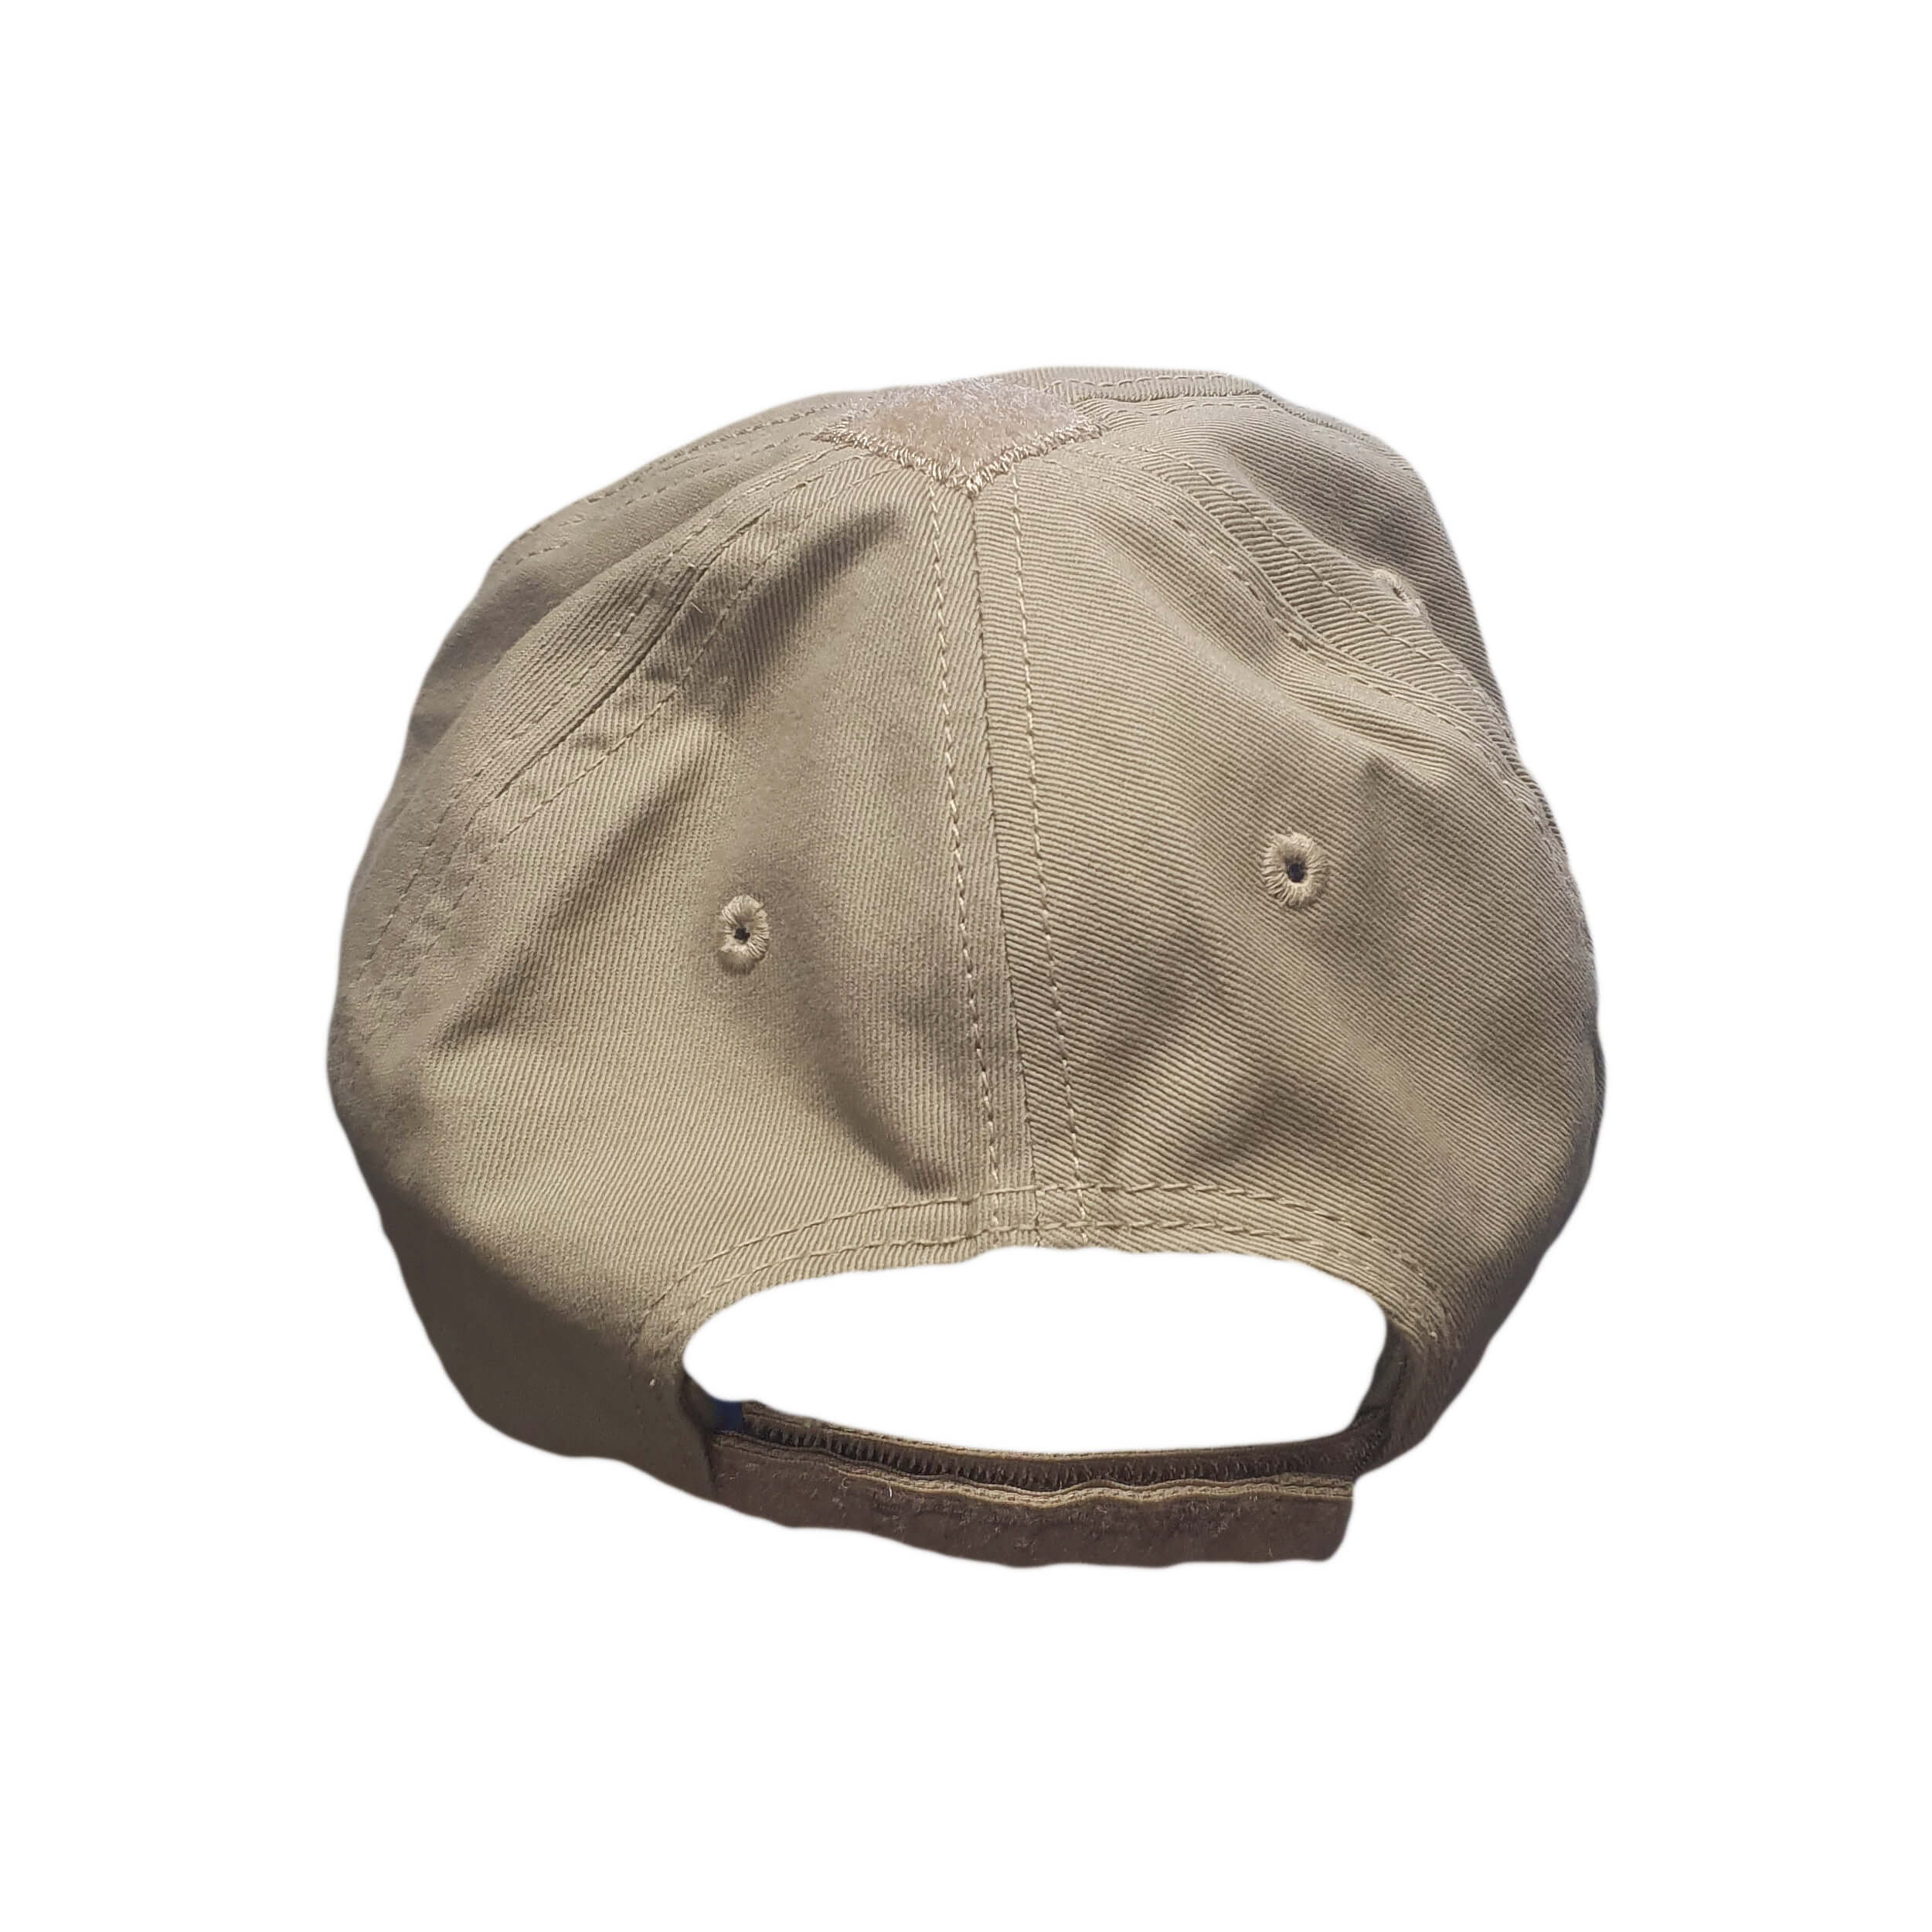 Tactical Cap with Self-Defense Tool